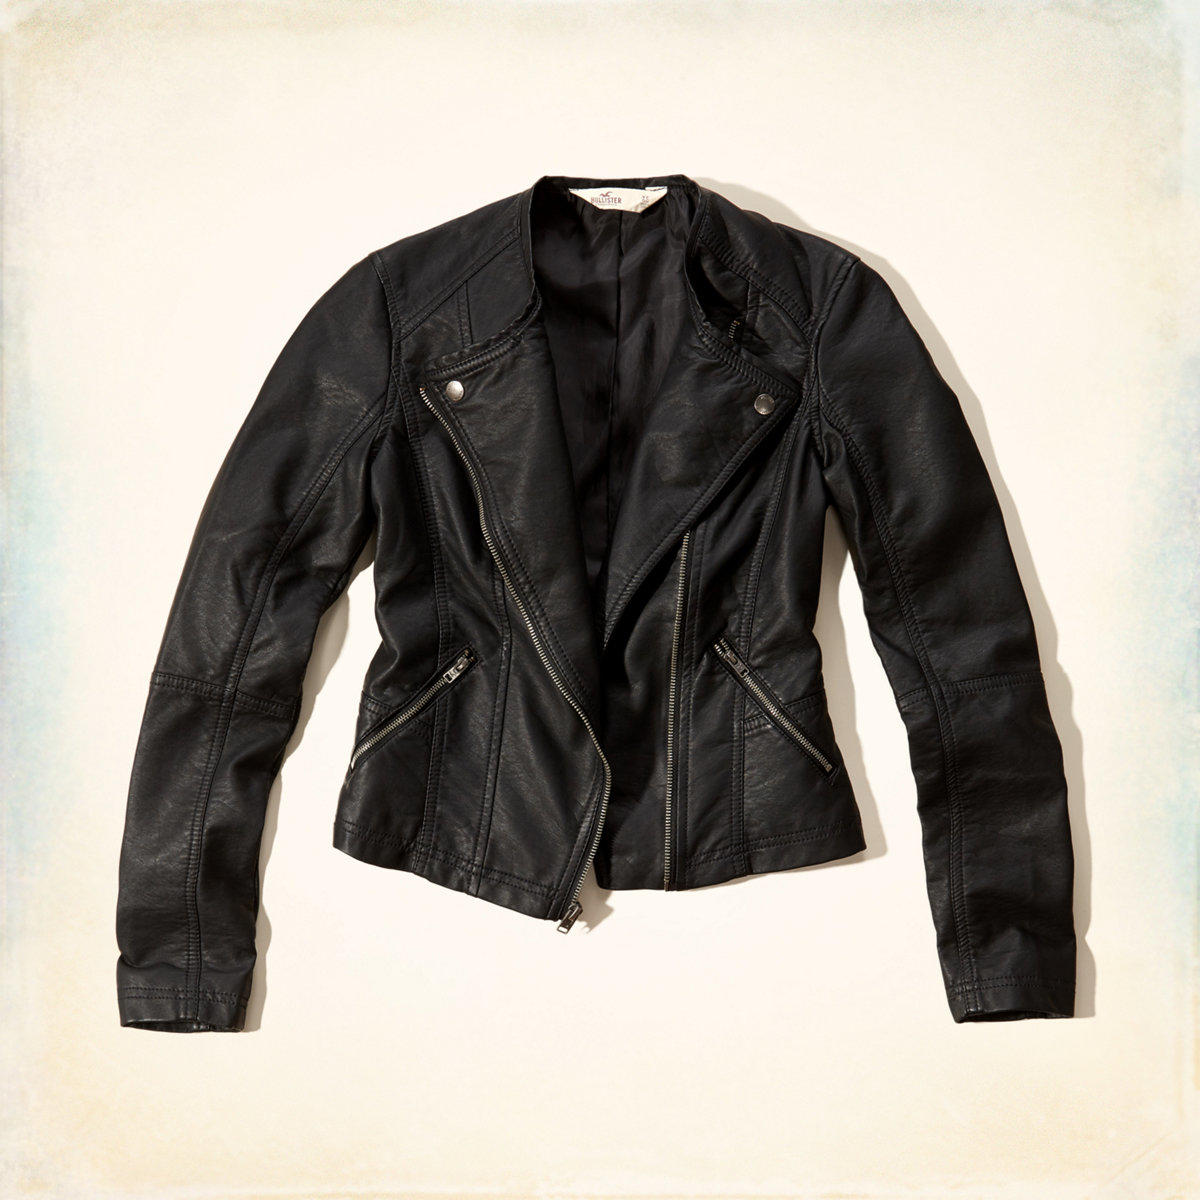 Hollister leather jackets